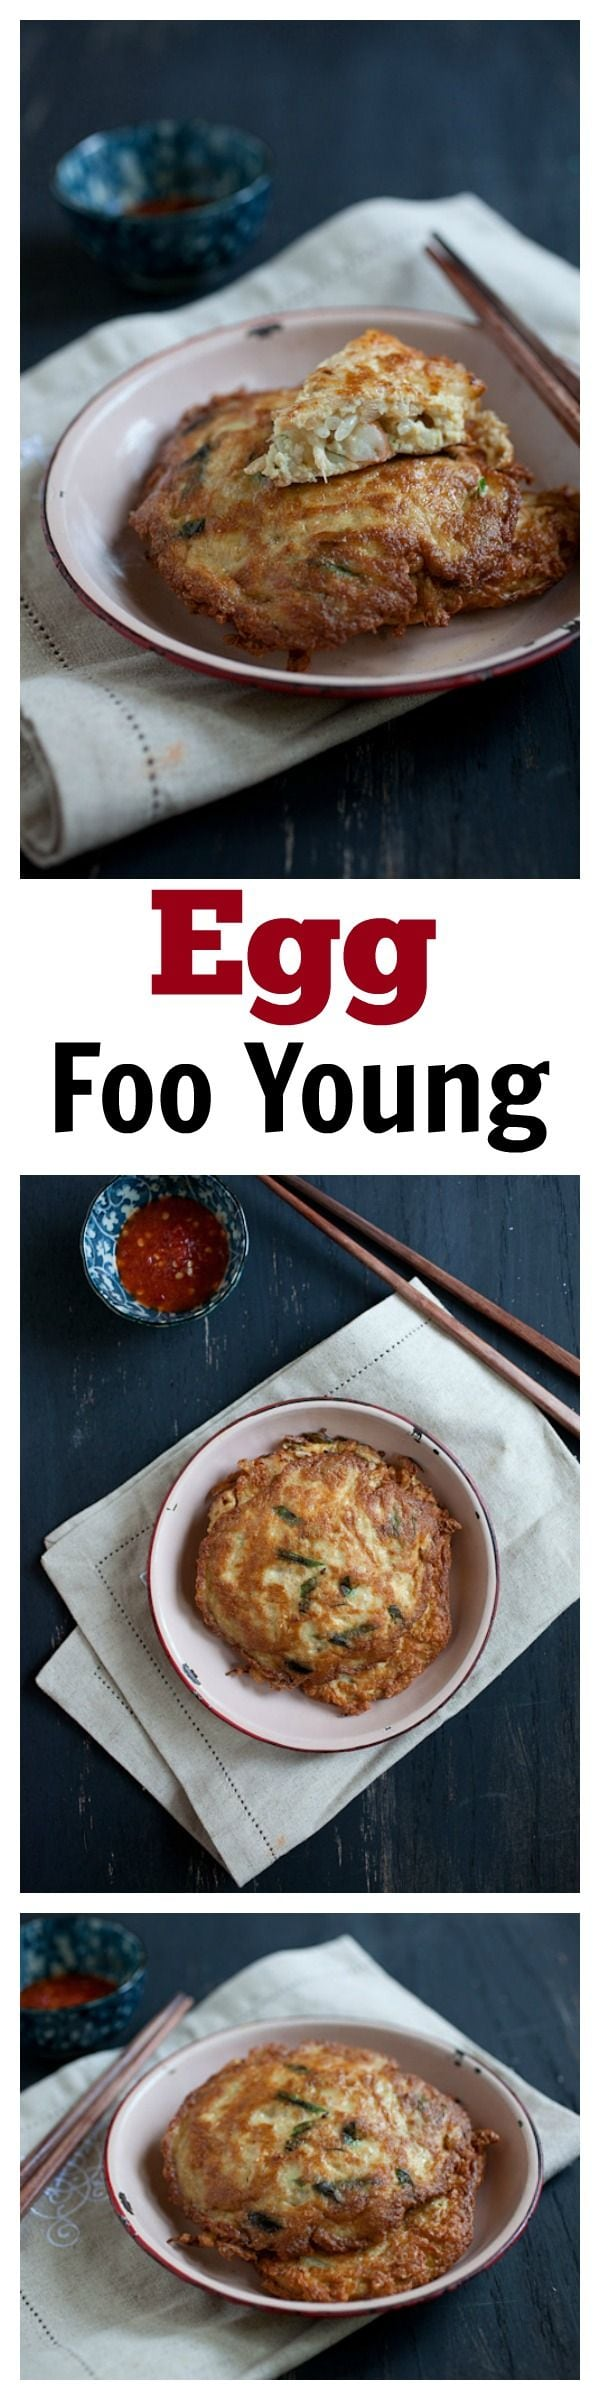 Egg Foo Young - Chinese-style omelet filled with ground pork and various vegetables. This is an authentic egg foo young recipe | rasamalaysia.com